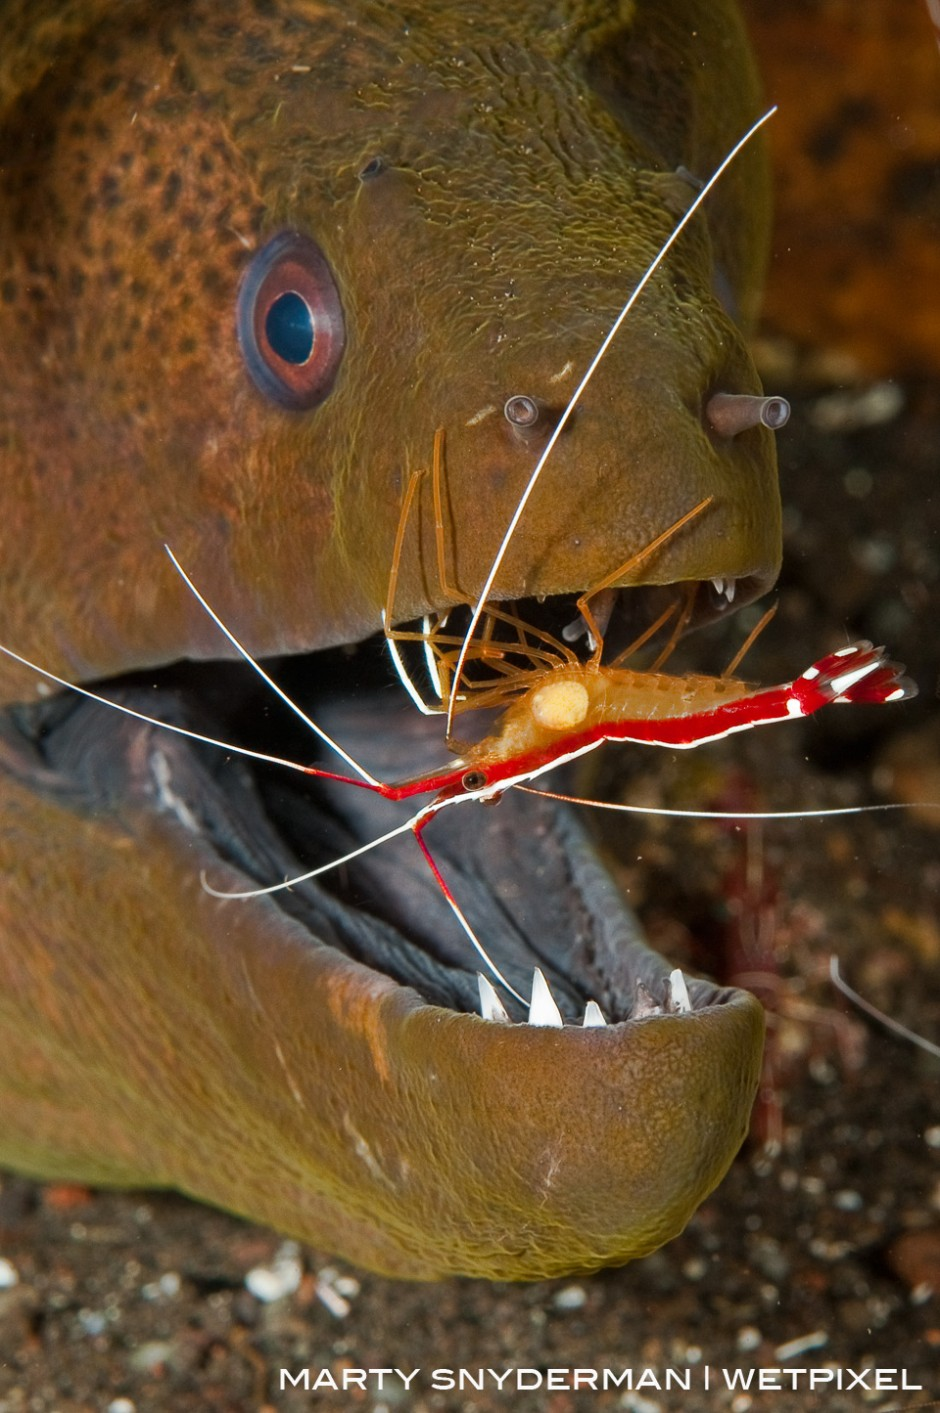 A yellow-margin moray eel, *Gymnothorax flavimarginatus*, getting cleaned by a scarlet cleaner shrimp, *Lysmata ambionensis*, in Indonesia